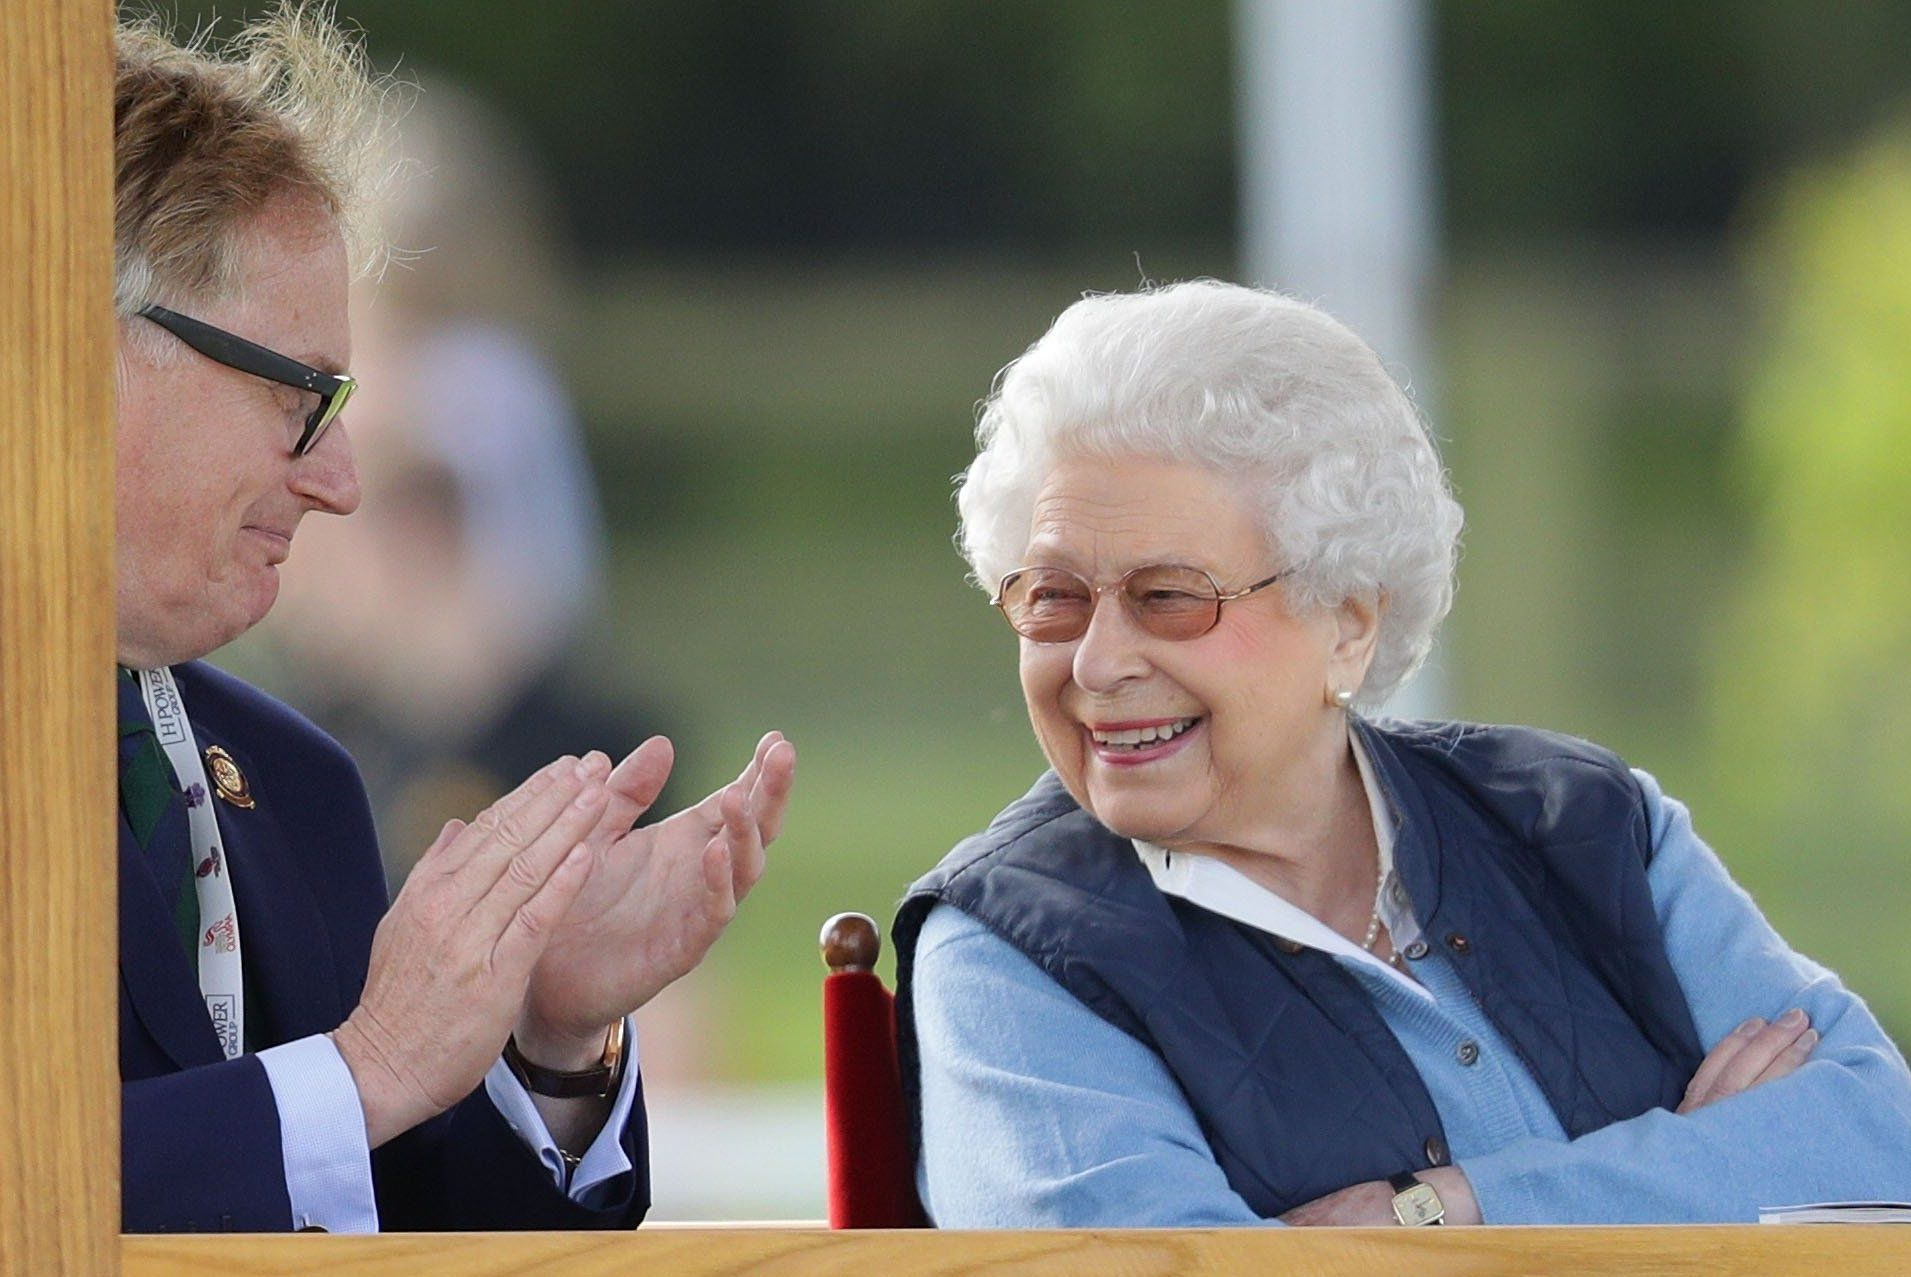 The Queen shares a joke as she enjoys some downtime at horse show